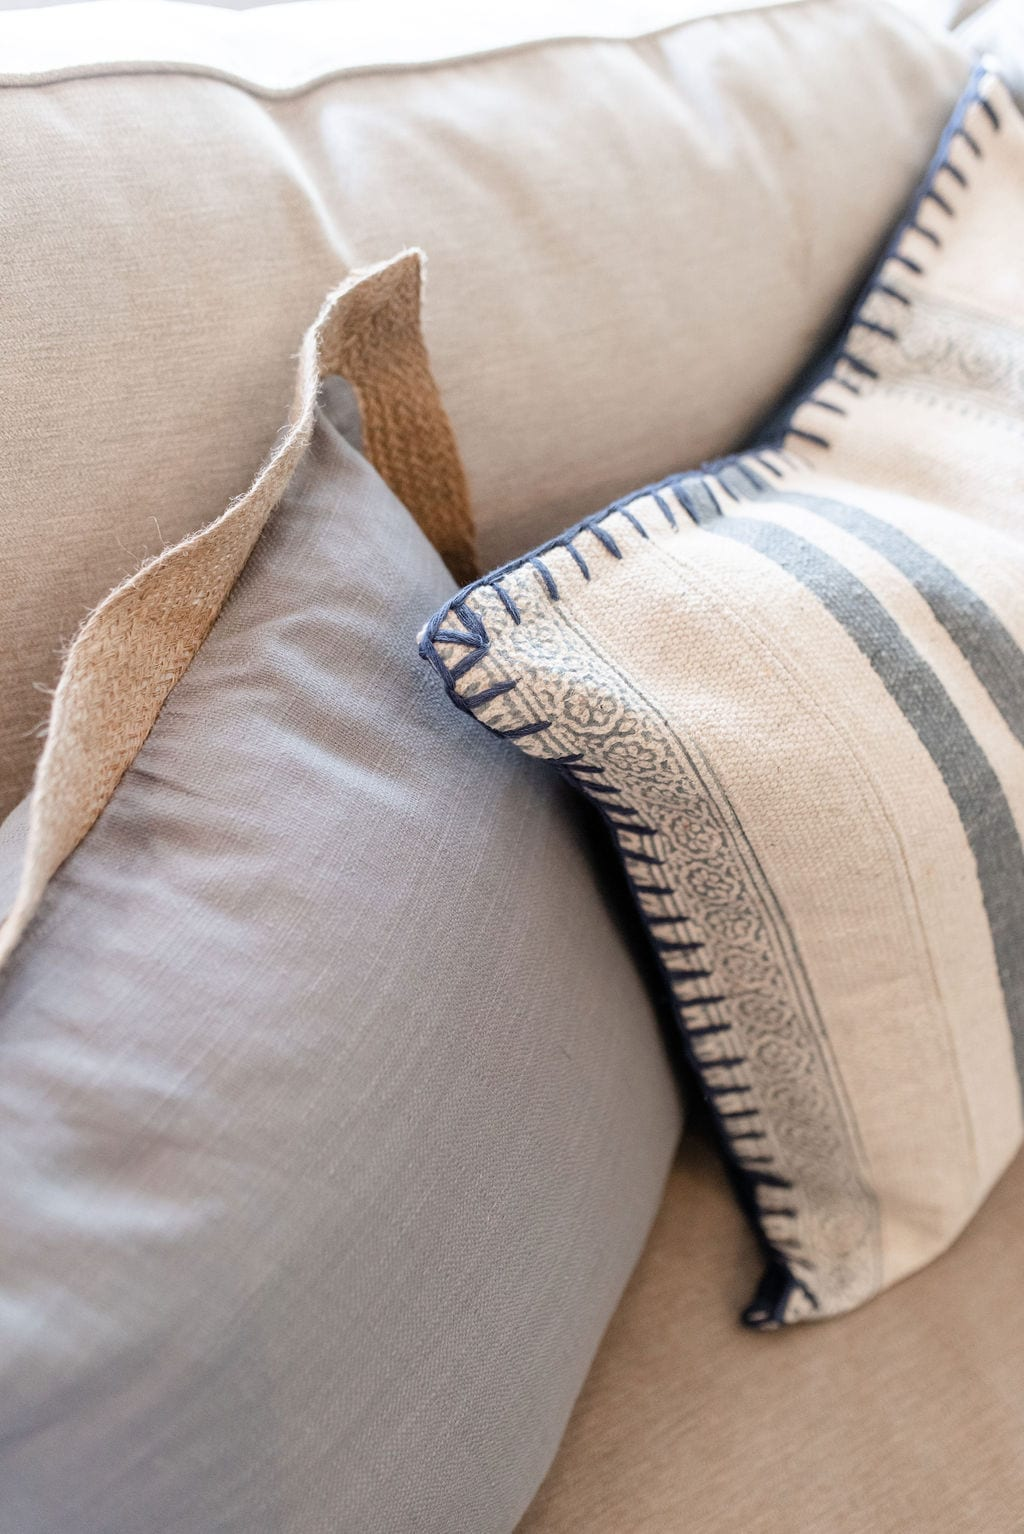 Inexpensive throw pillows. Decorating without spending too much money on home decor accents in blue and light brown colors.